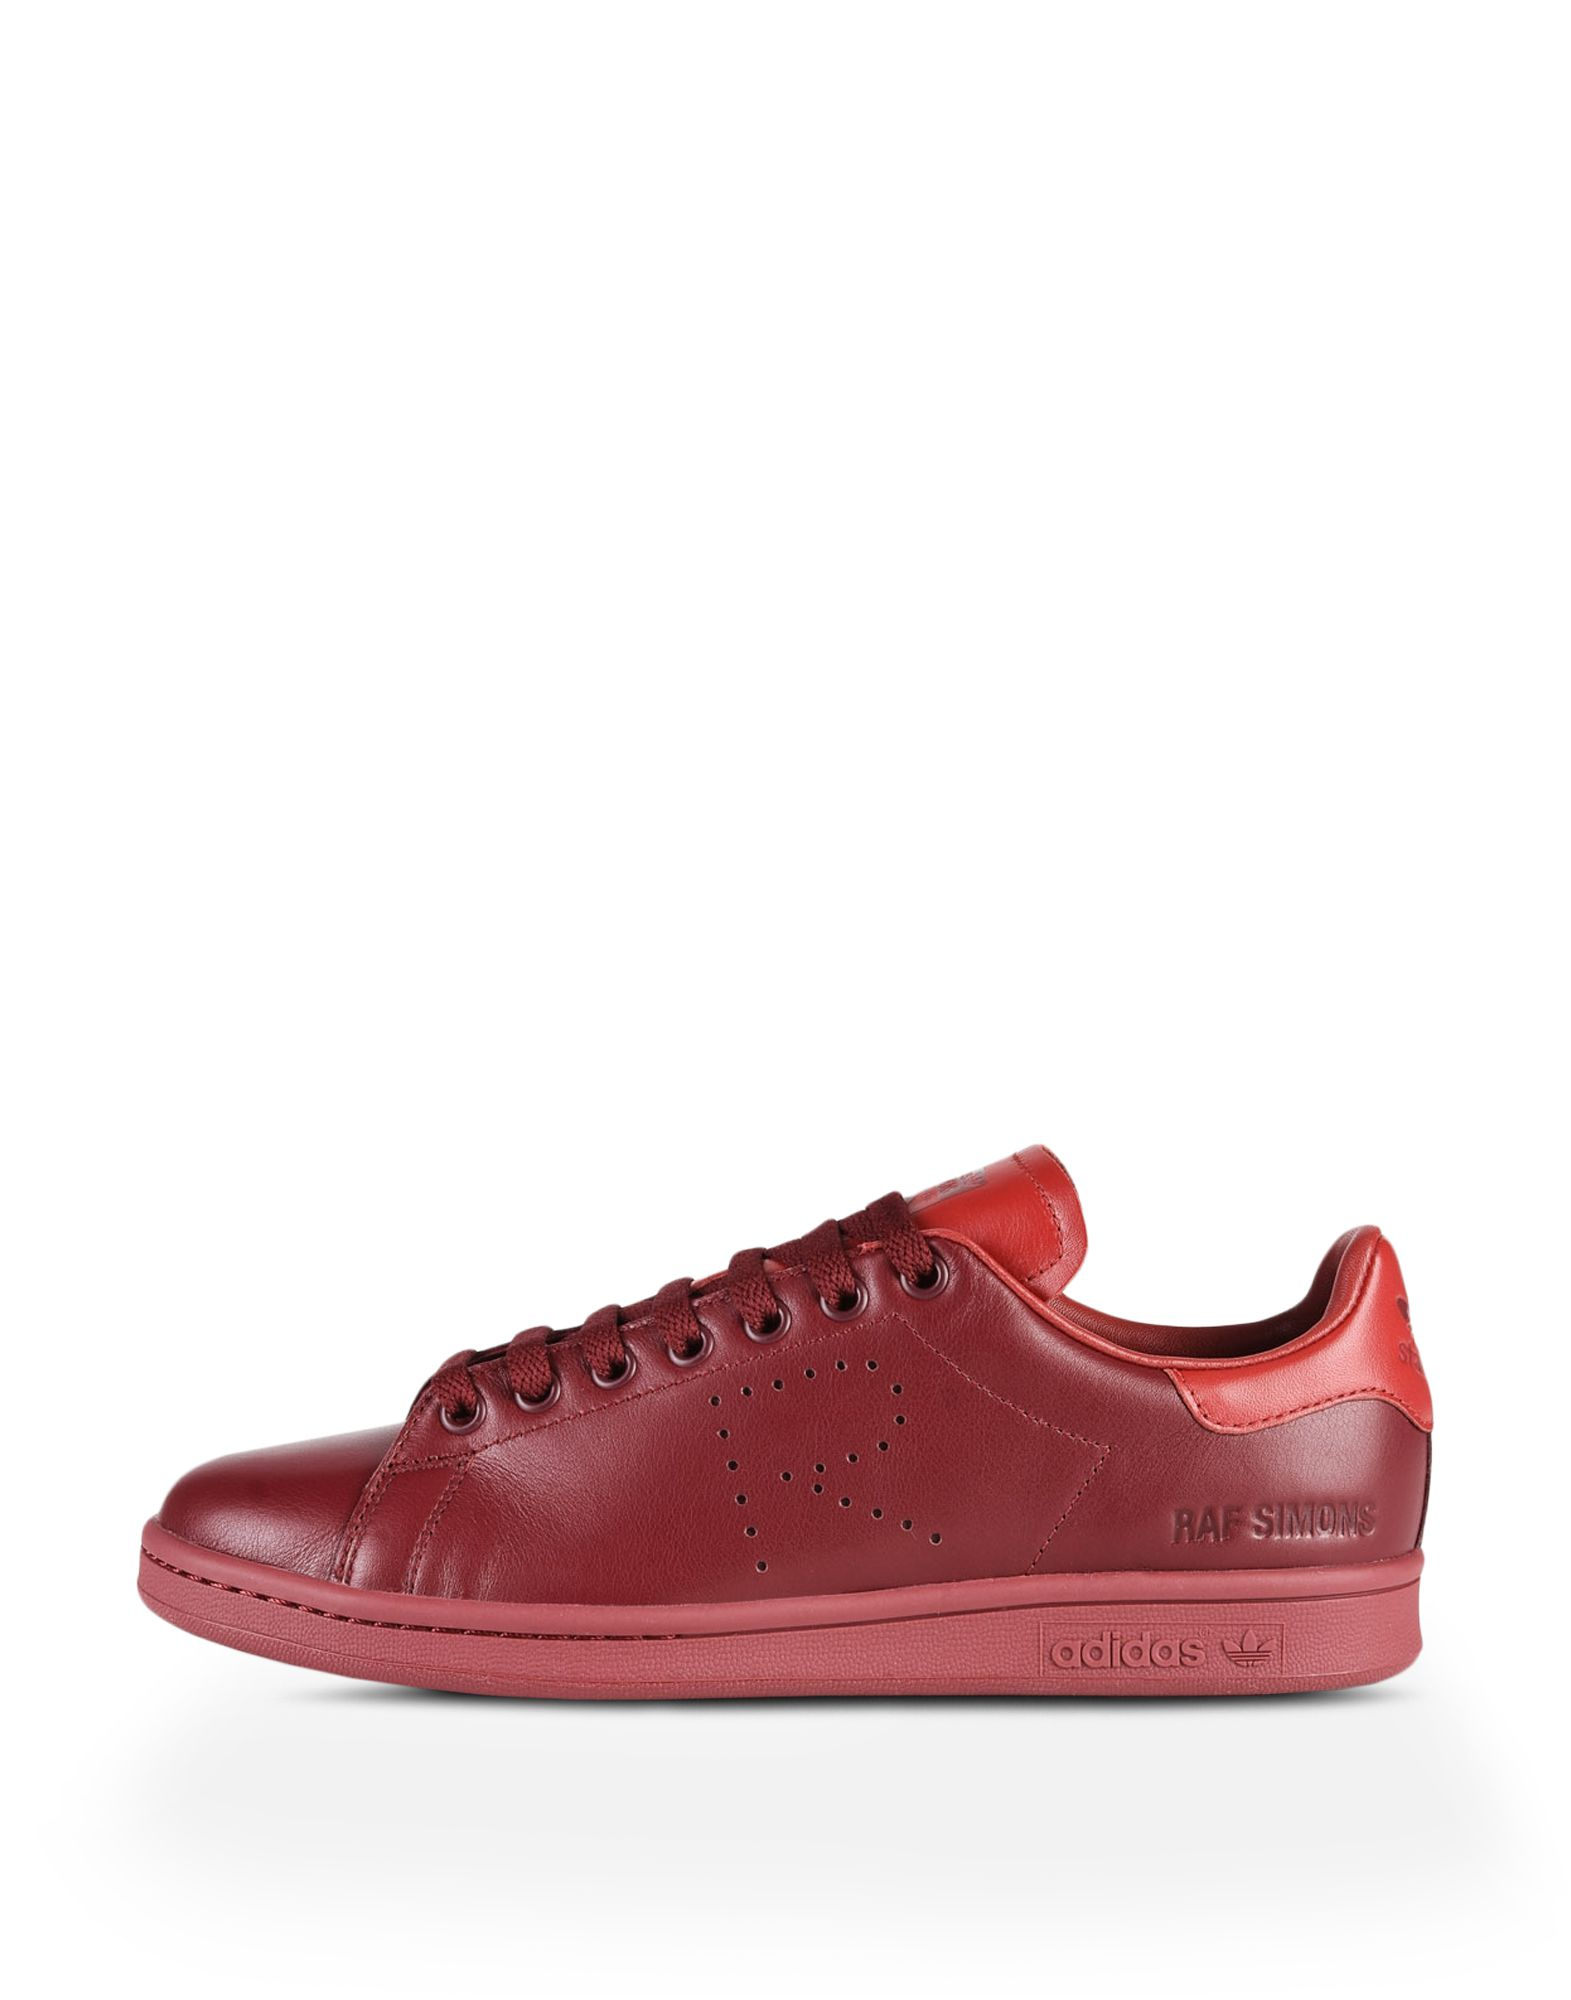 buy online c23c2 215fc stan smith adidas donna bordeaux